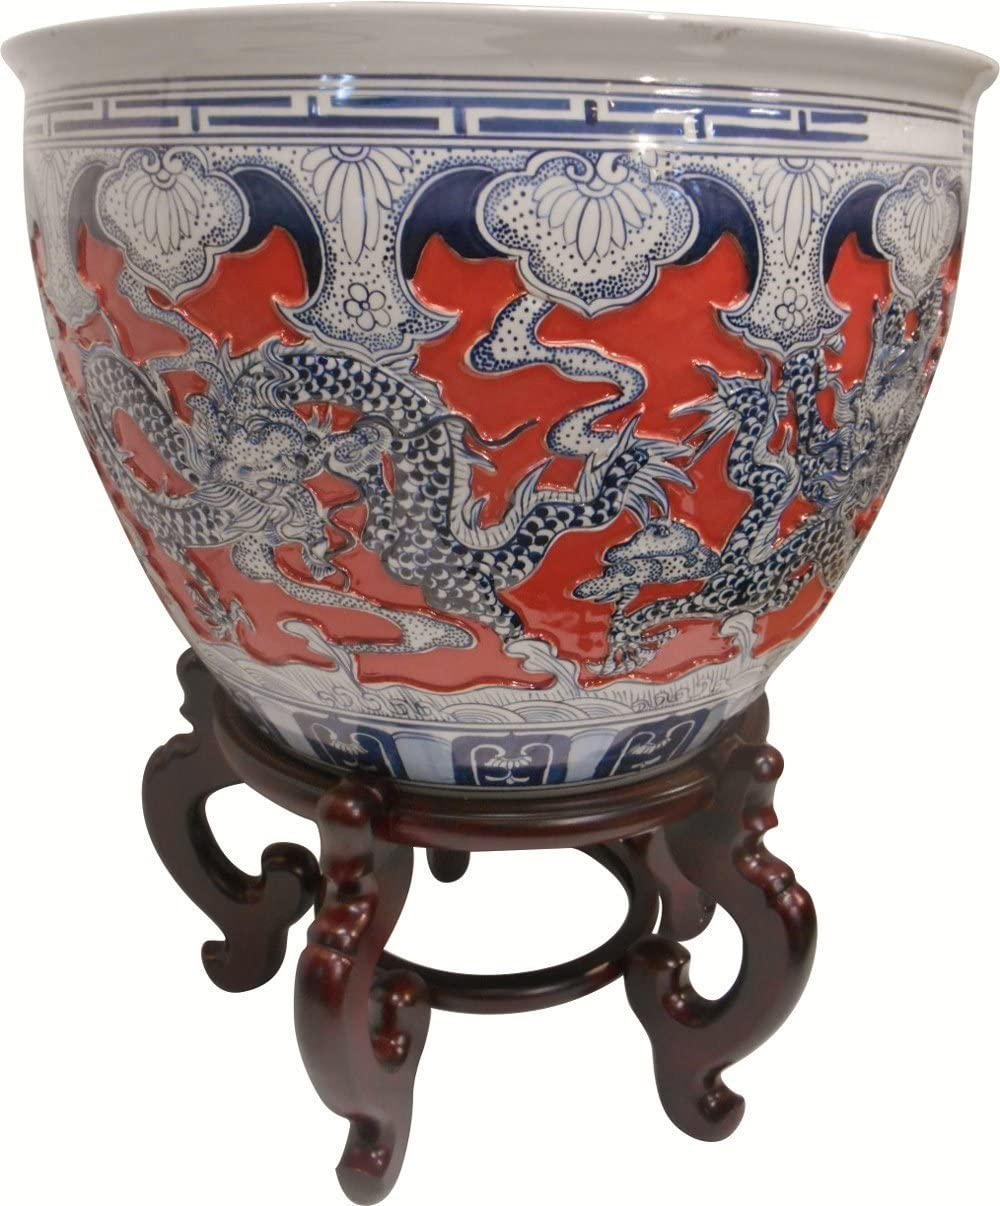 Oriental Furniture Warehouse Carved Chinese Porcelain Dragon Fishbowl Imperial Coral Glaze